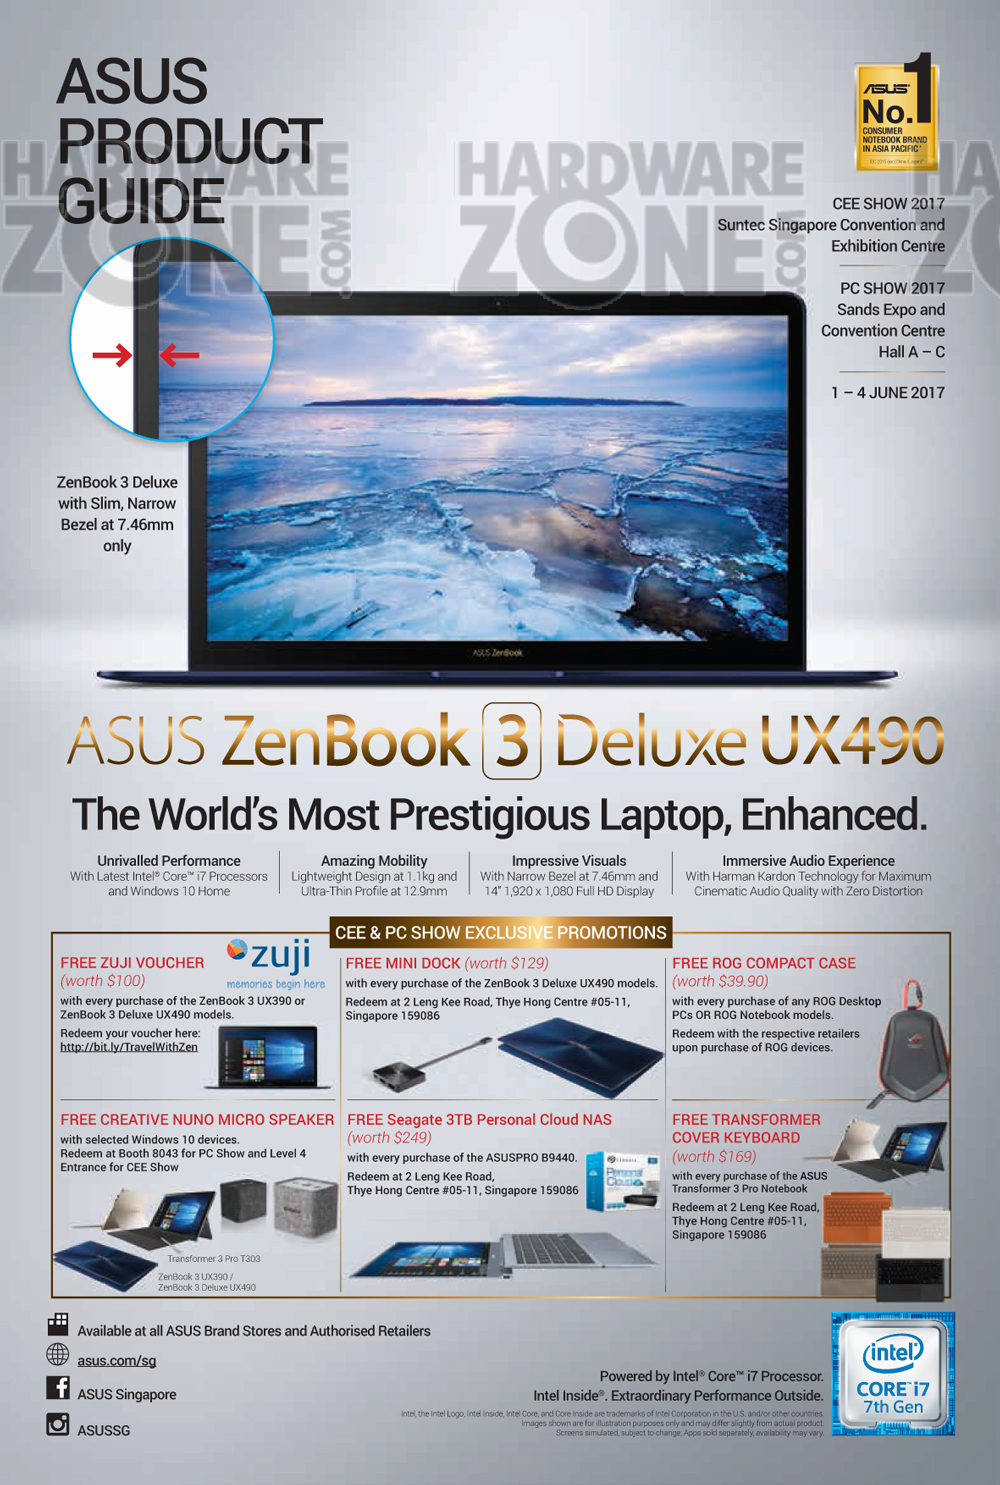 Asus gaming desktops amp monitors brochures from cee show 2016 singapore - Asus Product Guide Pg 01